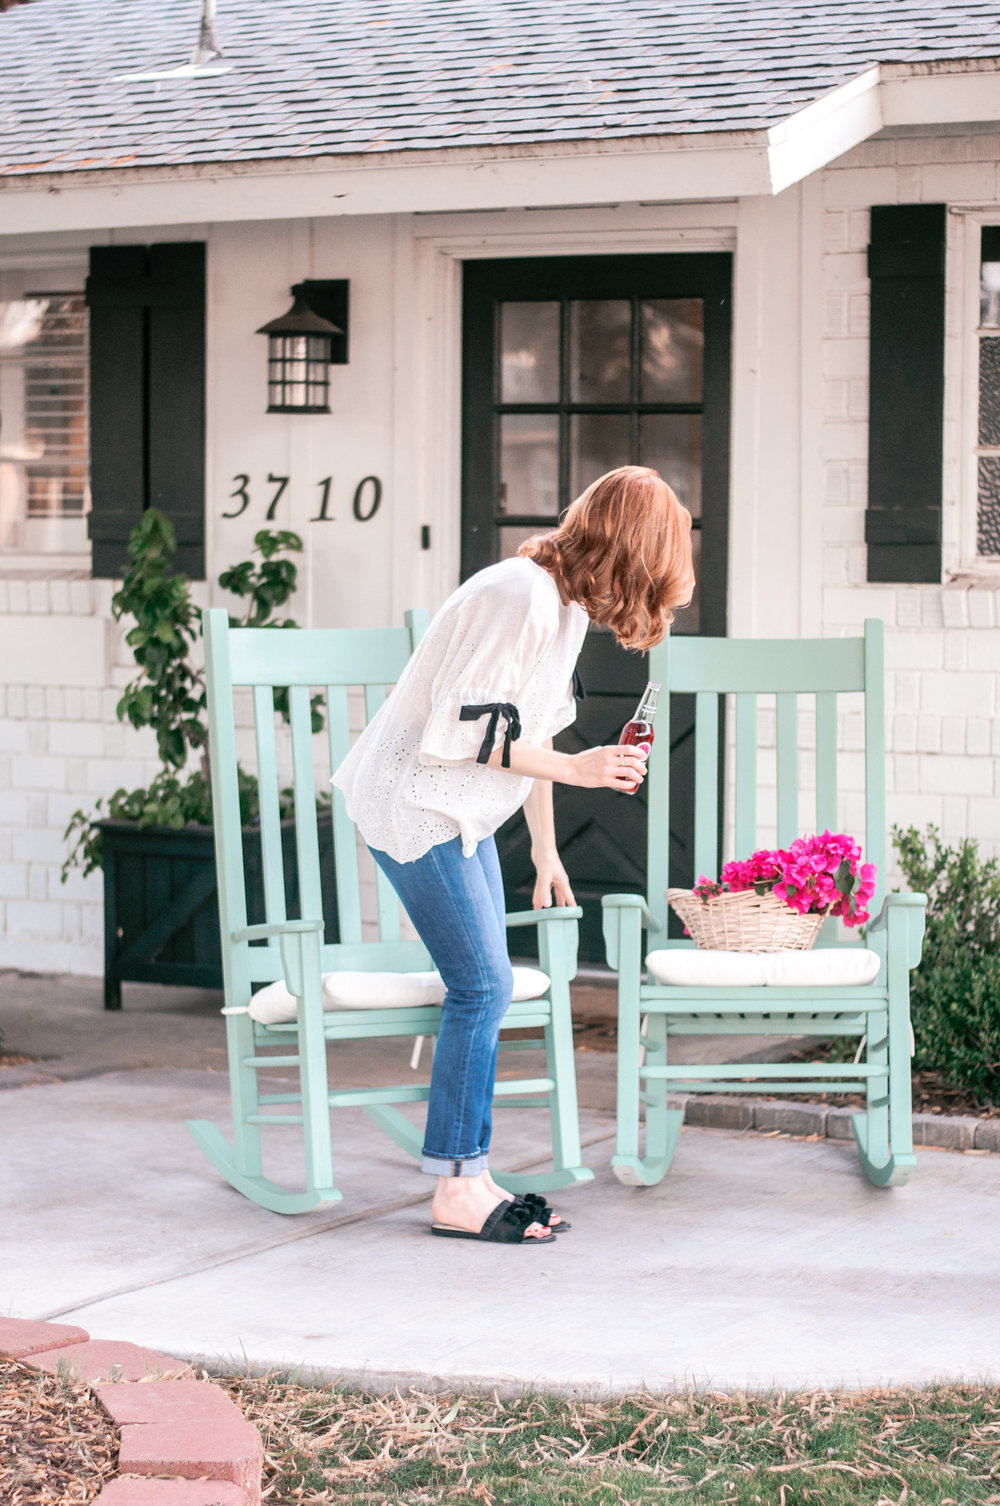 DIY Wooden Rocking Chair Makeover with Cushions for Front Porch